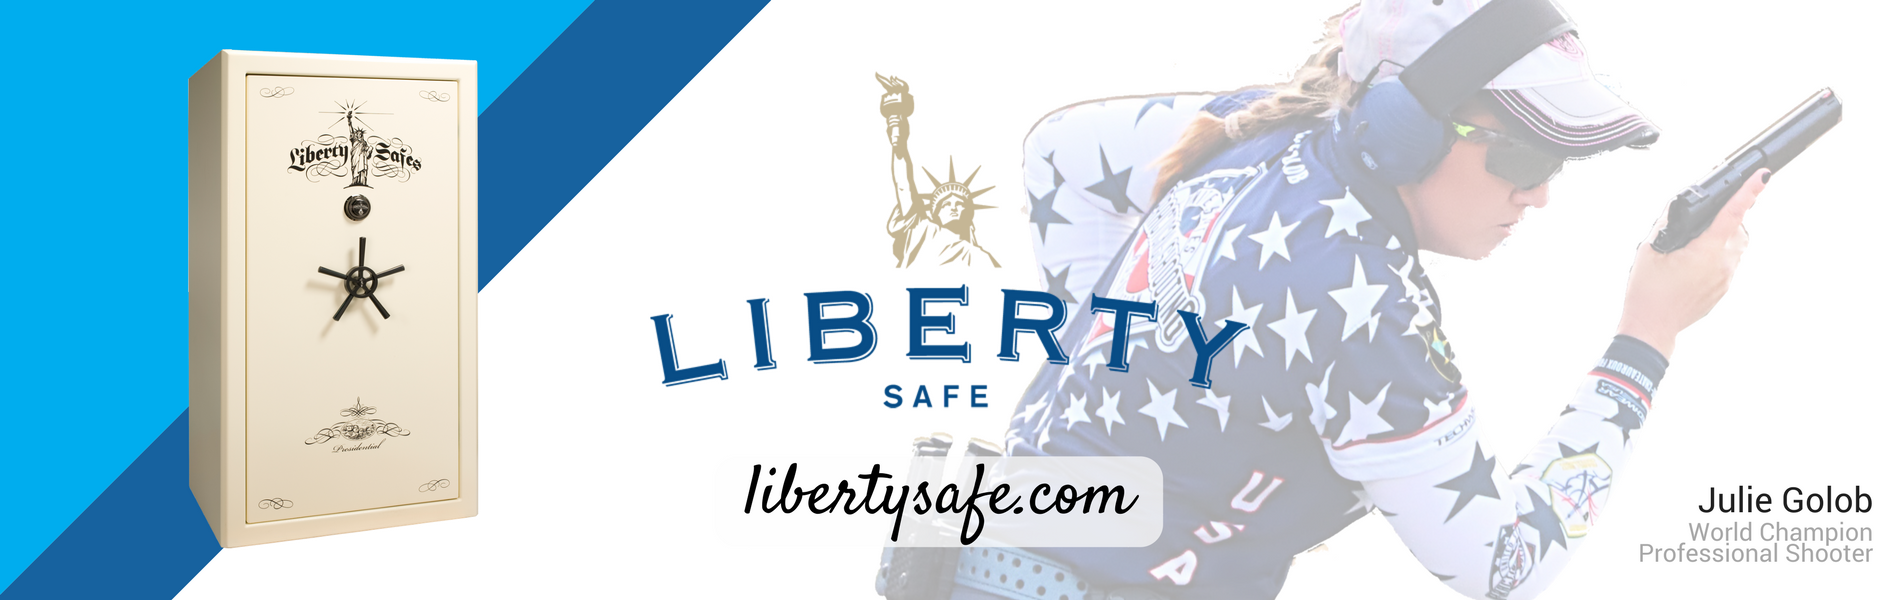 Juile Golob World Champion Professional Shooter Endorses Liberty Safe safes. Liberty Safes number 1 in quality home or gun safes with the industry best lifetime warranty & customer support.